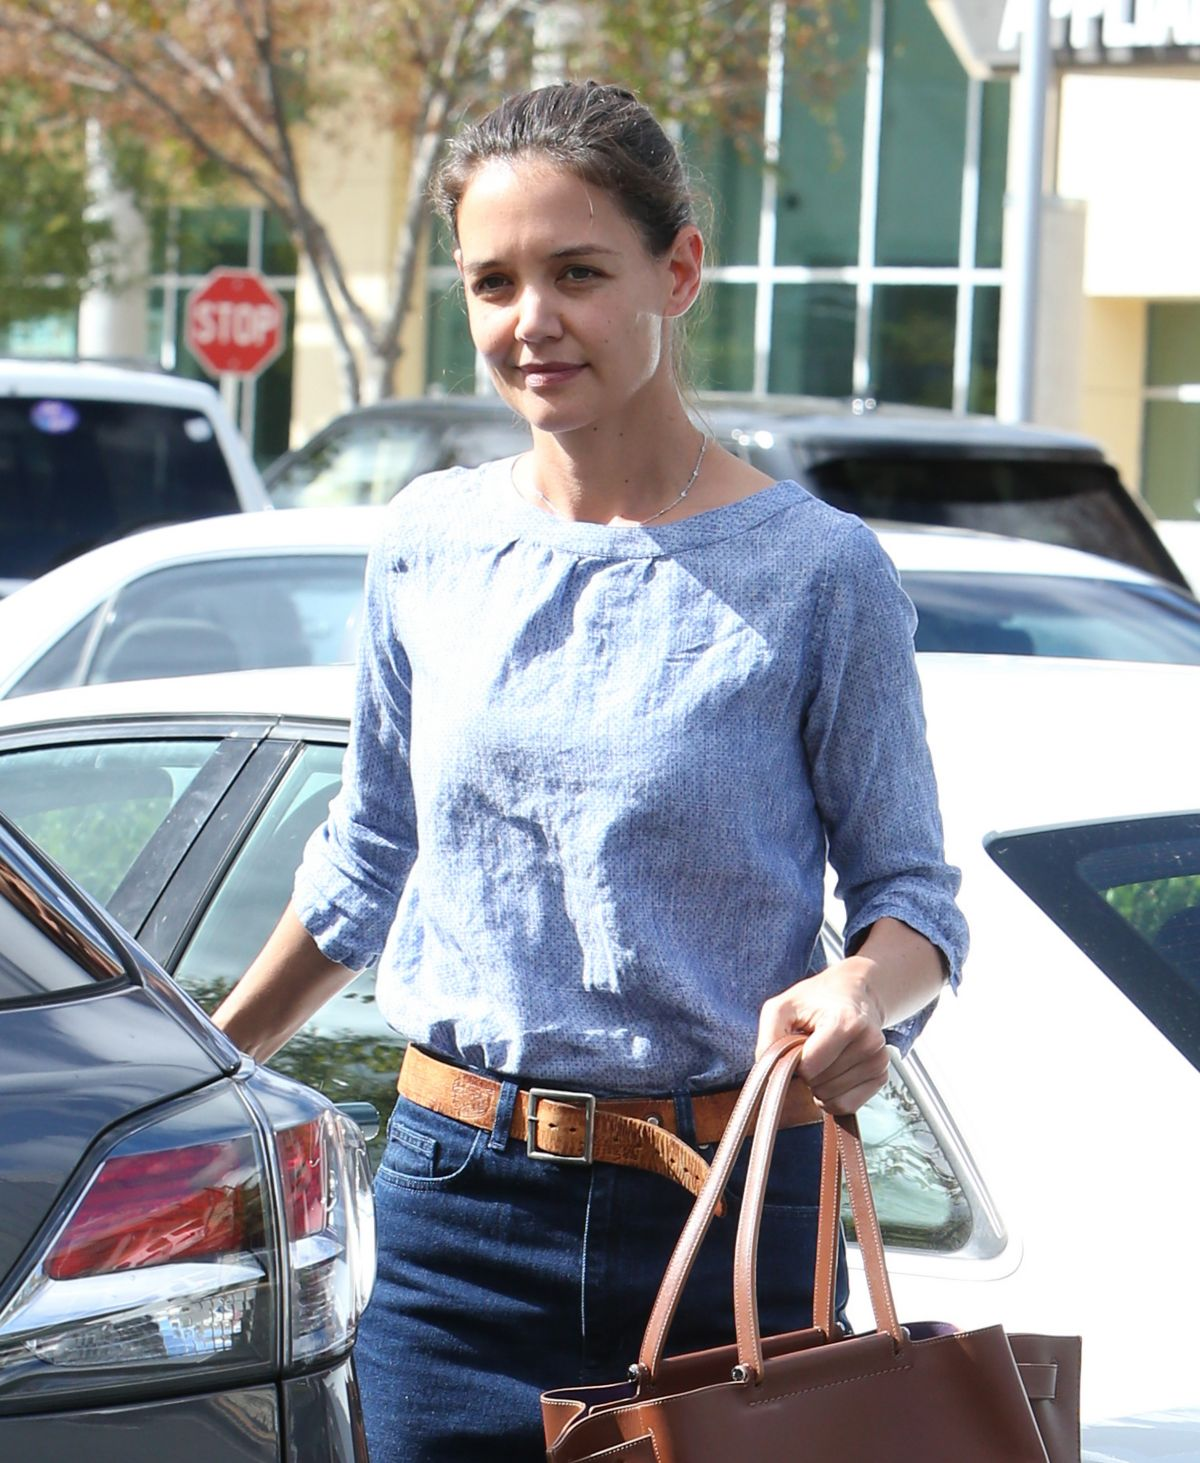 KATIE HOLMES Out for Grocery Shopping in Calabasas 10/28/2016